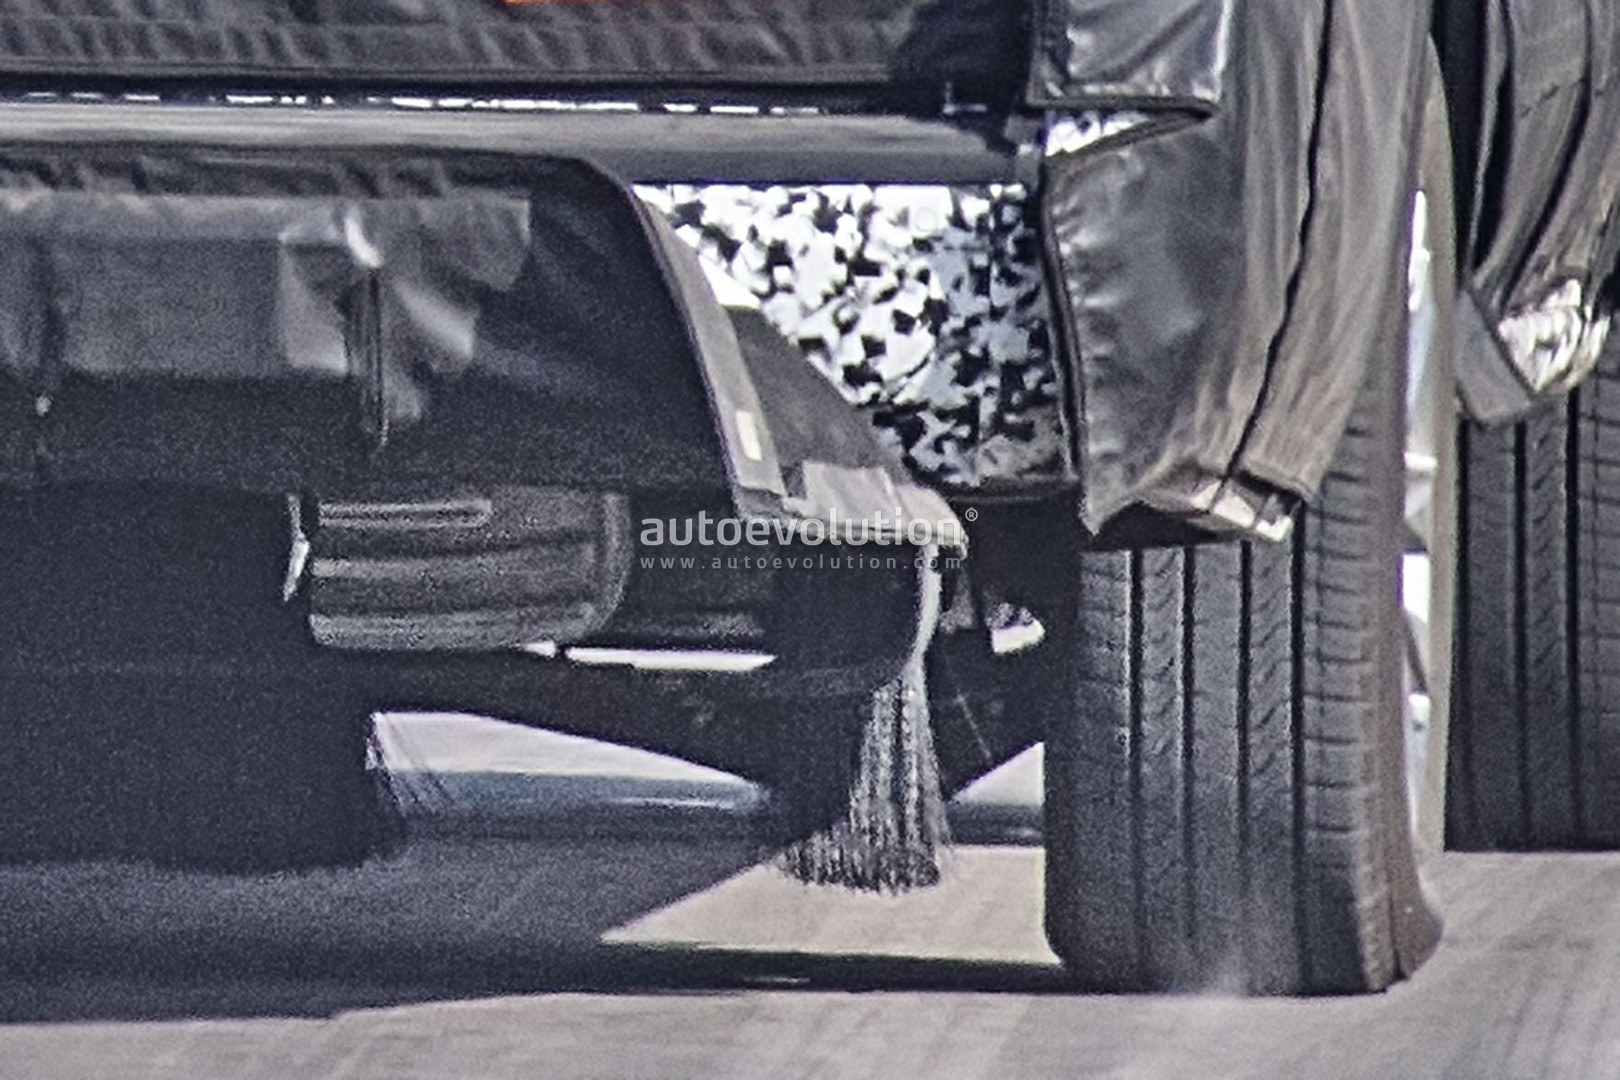 2020 Chevy Suburban Spyshots Reveal New Independent Rear